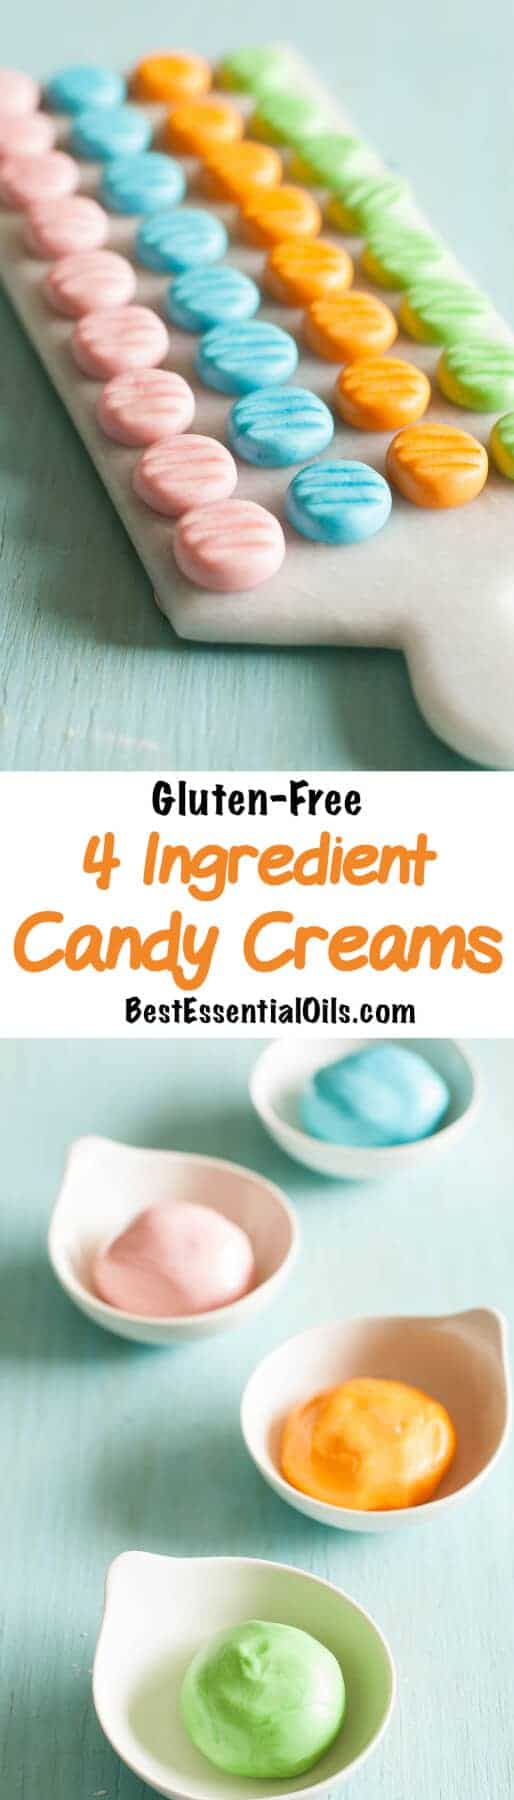 My daughter loves to makes these candy creams because they are so fast, easy and delicious.